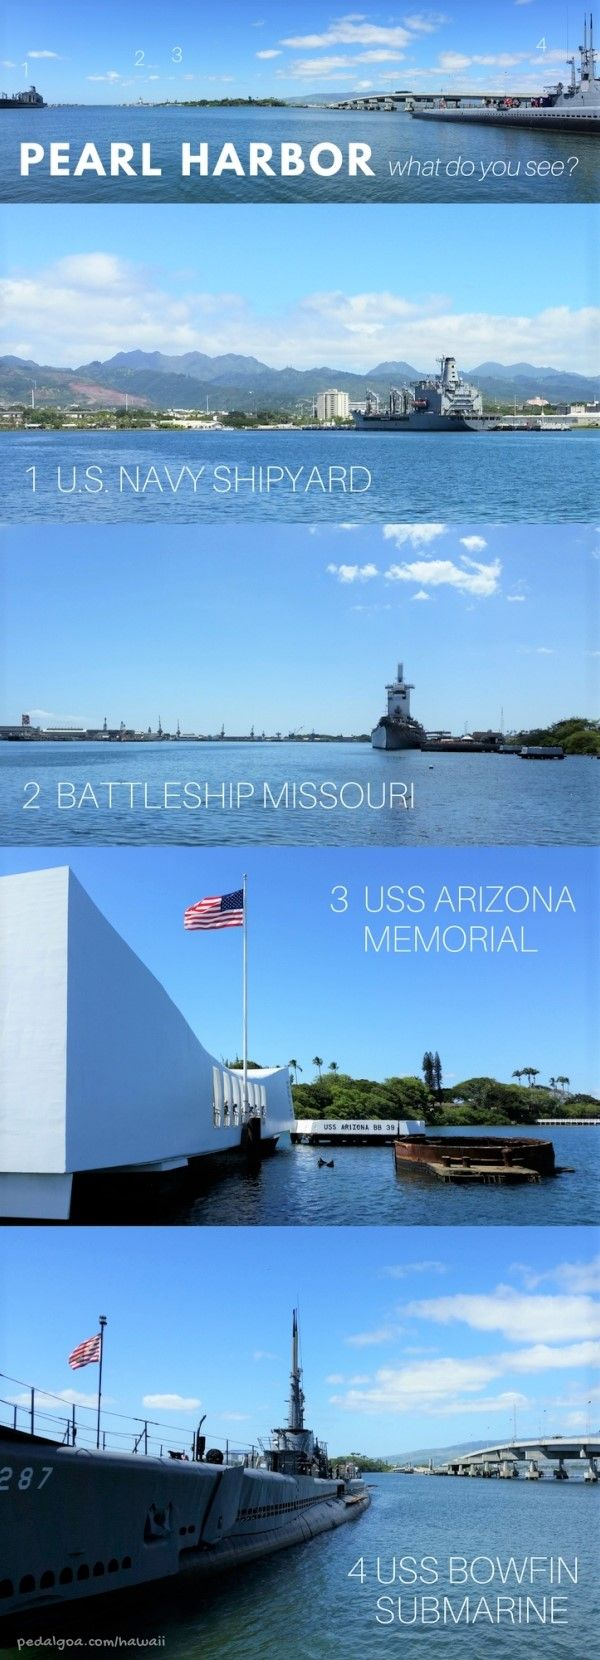 Pearl Harbor pictures: USS Arizona Memorial, Battleship Missouri, US Navy Shipyard, USS Bowfin Submarine. The Pearl Harbor memorial in Hawaii is a top travel bucket list of things to do on Oahu. Better understand facts of what propelled the US into World War II. As a national monument, it's a sort of national park in Hawaii! For culture and history activities near Honolulu, make a remembrance of the Pearl Harbor attack at this beautiful outdoor museum a part of your Hawaii vacation.